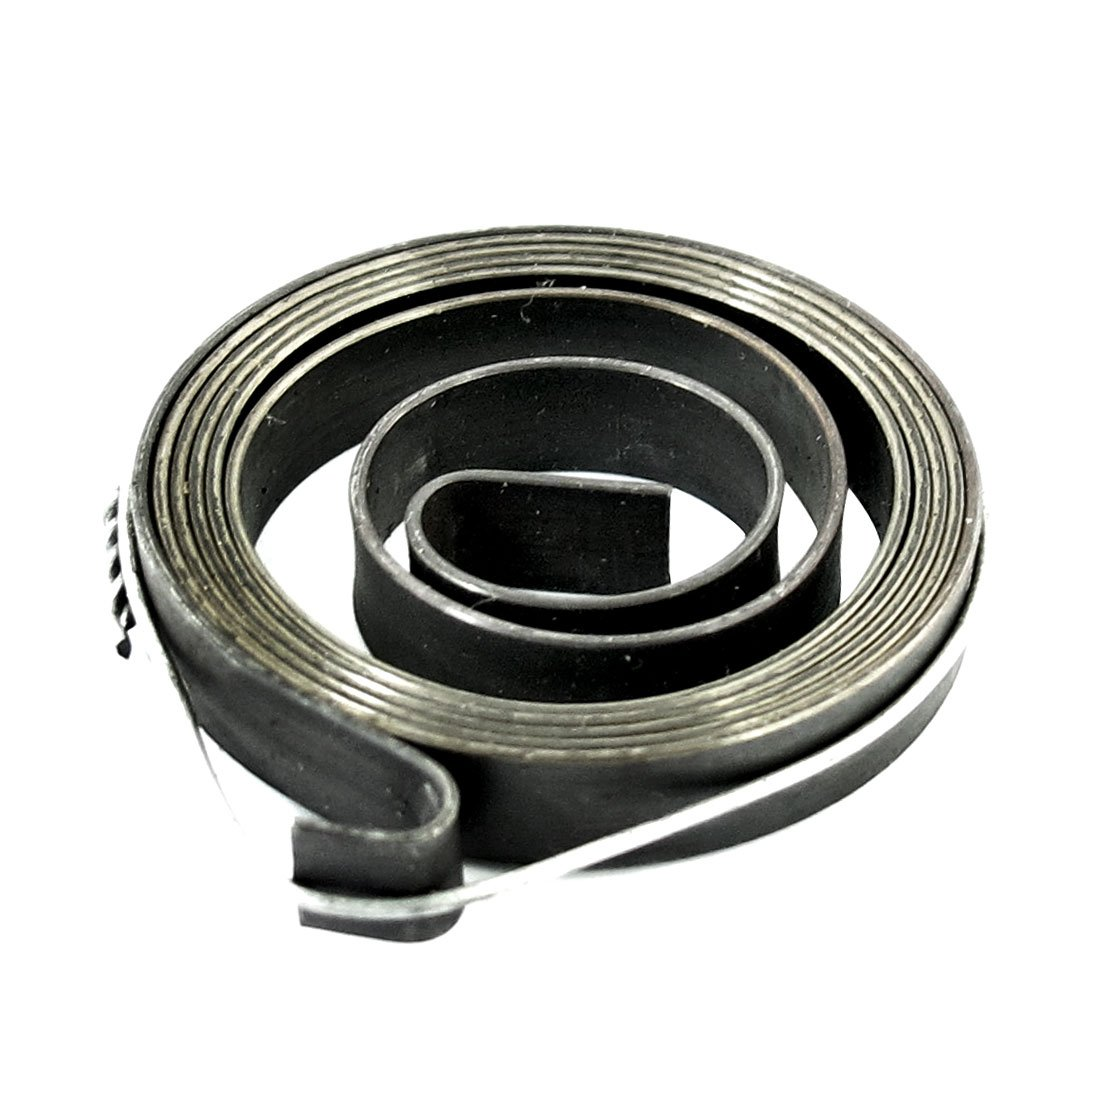 uxcell6'' Metal Drill Press Quill Feed Return Coil Spring Assembly 42mm a13042000ux0311